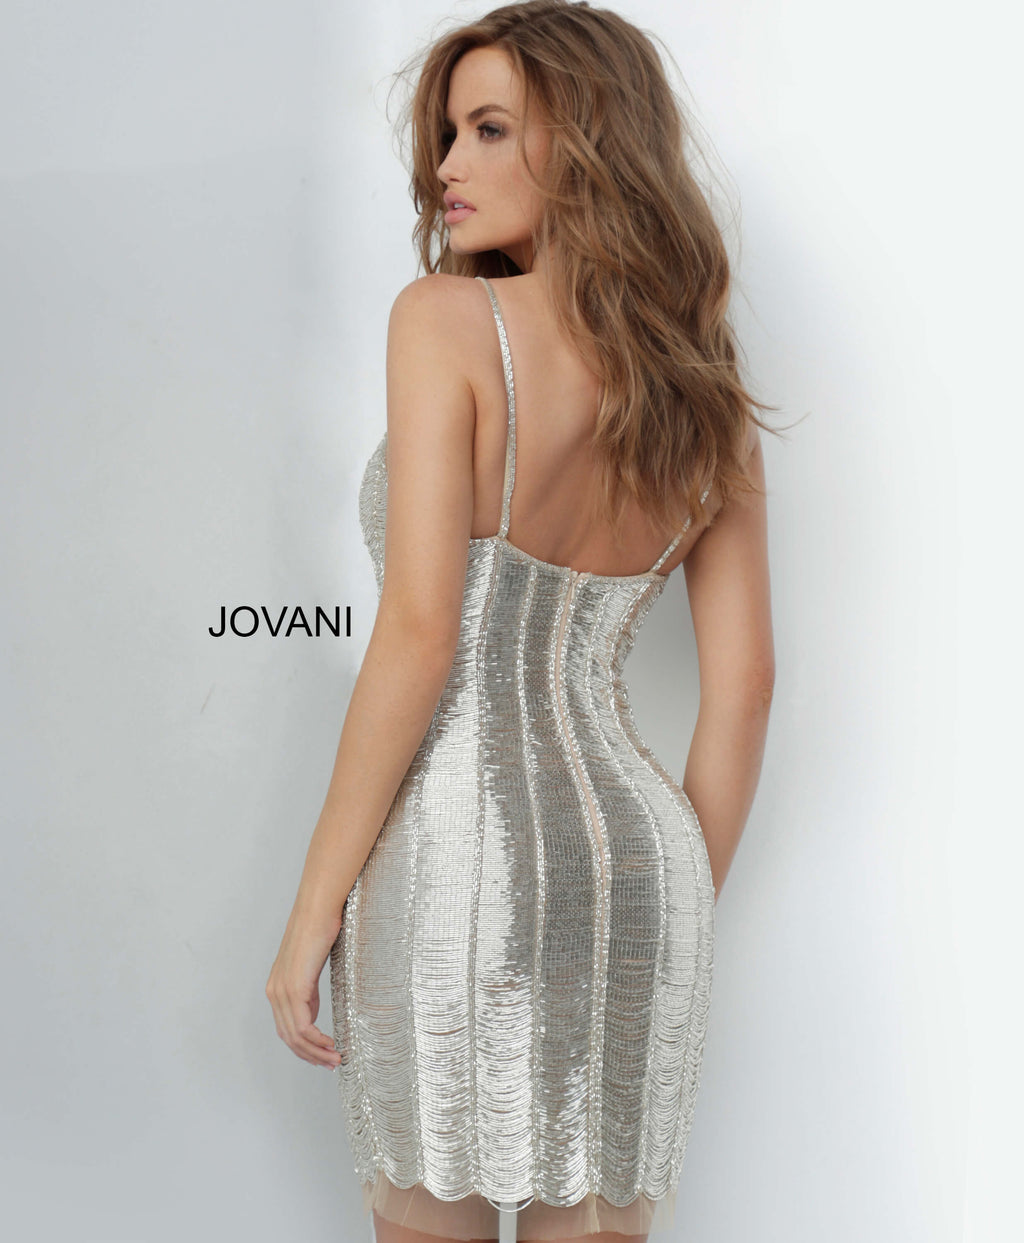 JOVANI 1861 Sheath Cocktail Dress